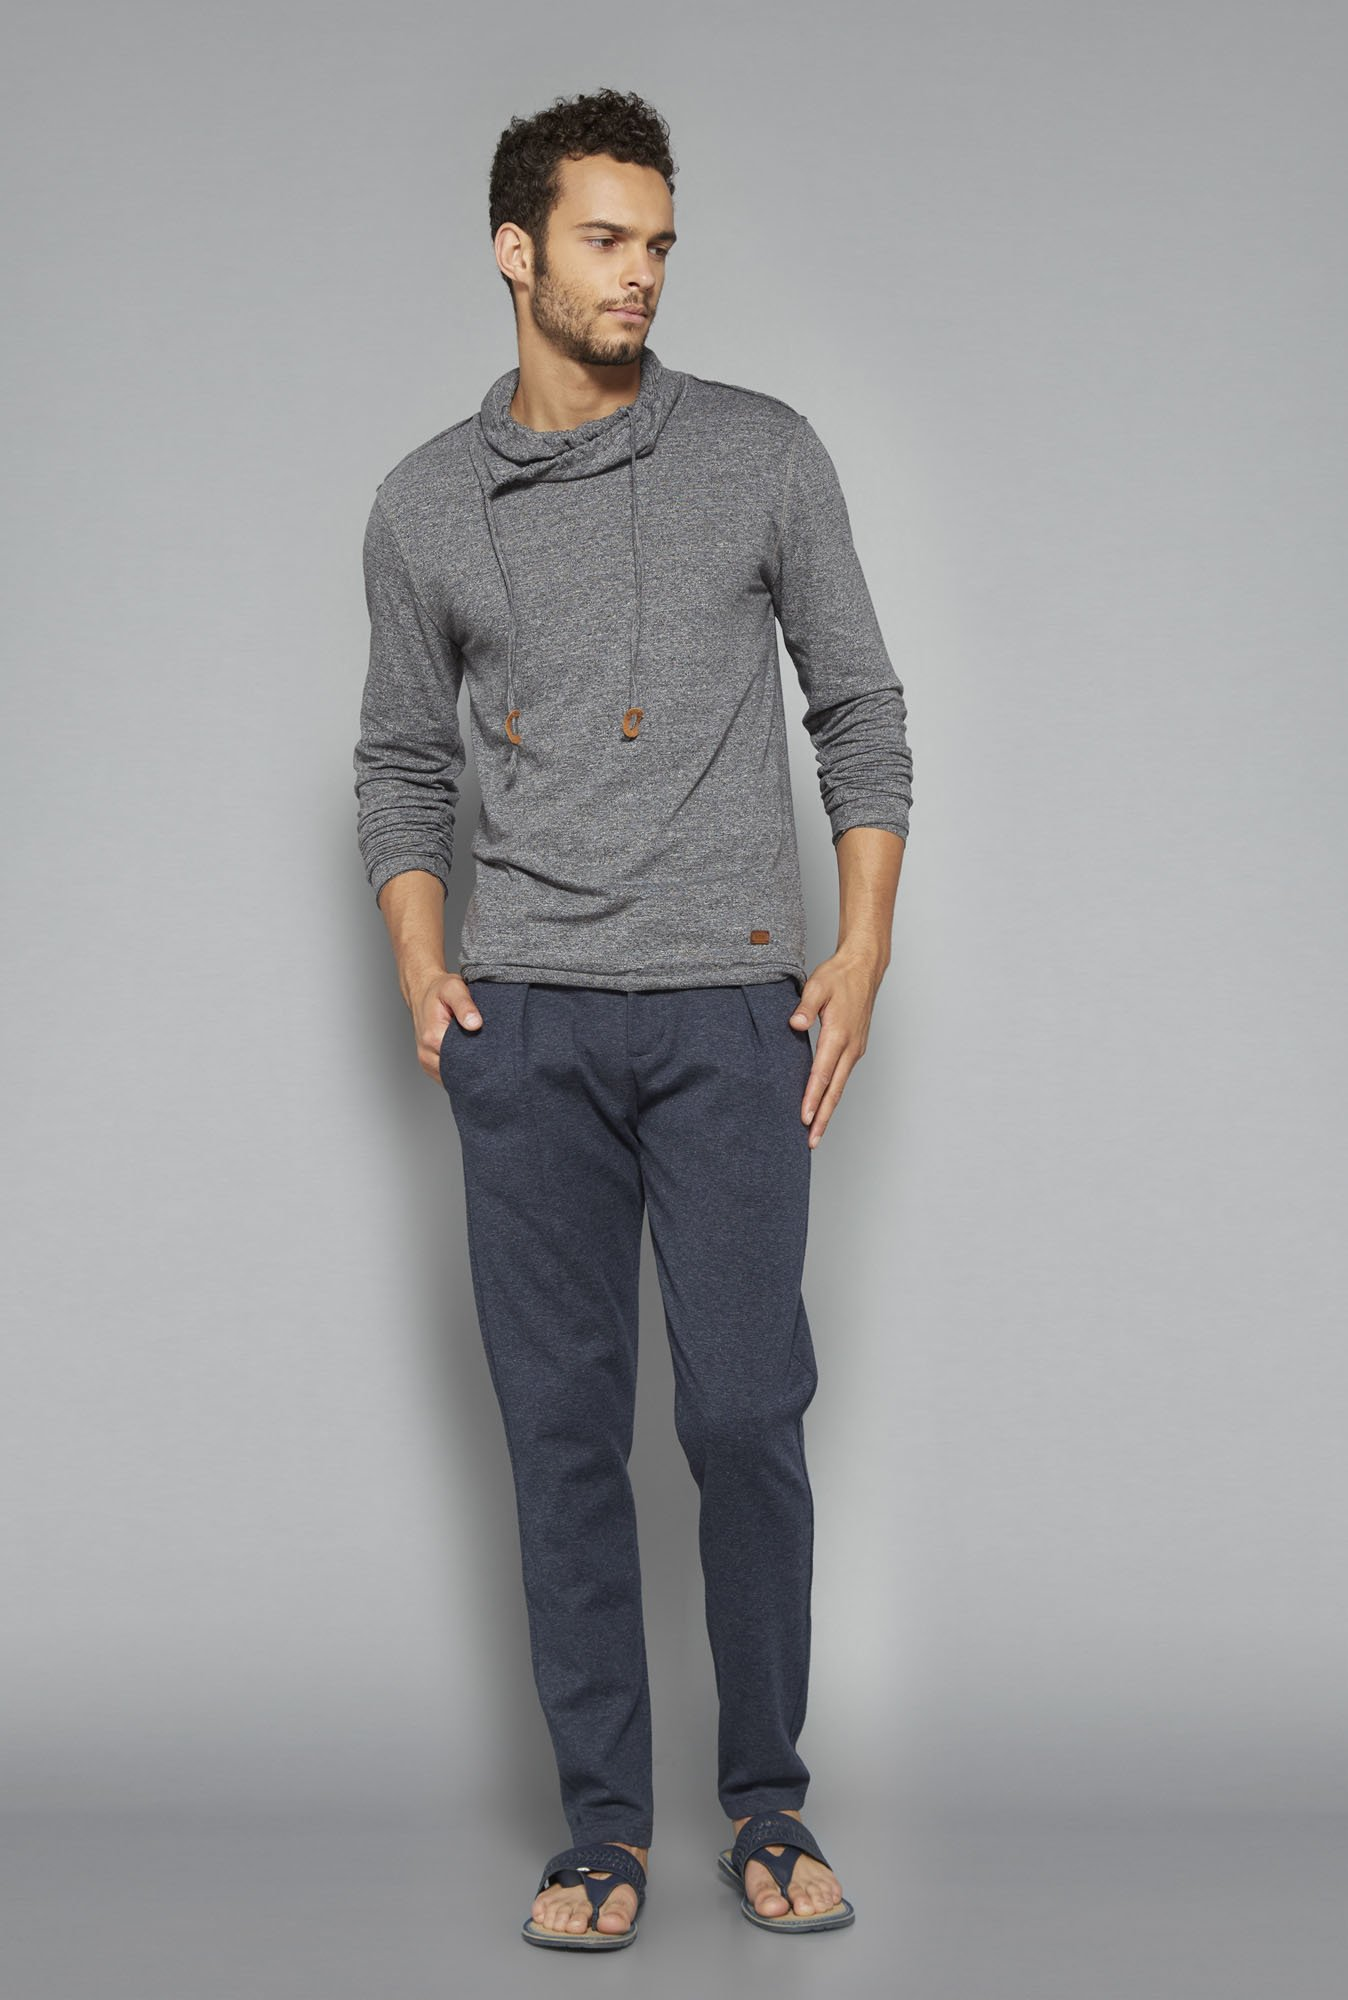 ETA by Westside Navy Textured Chinos